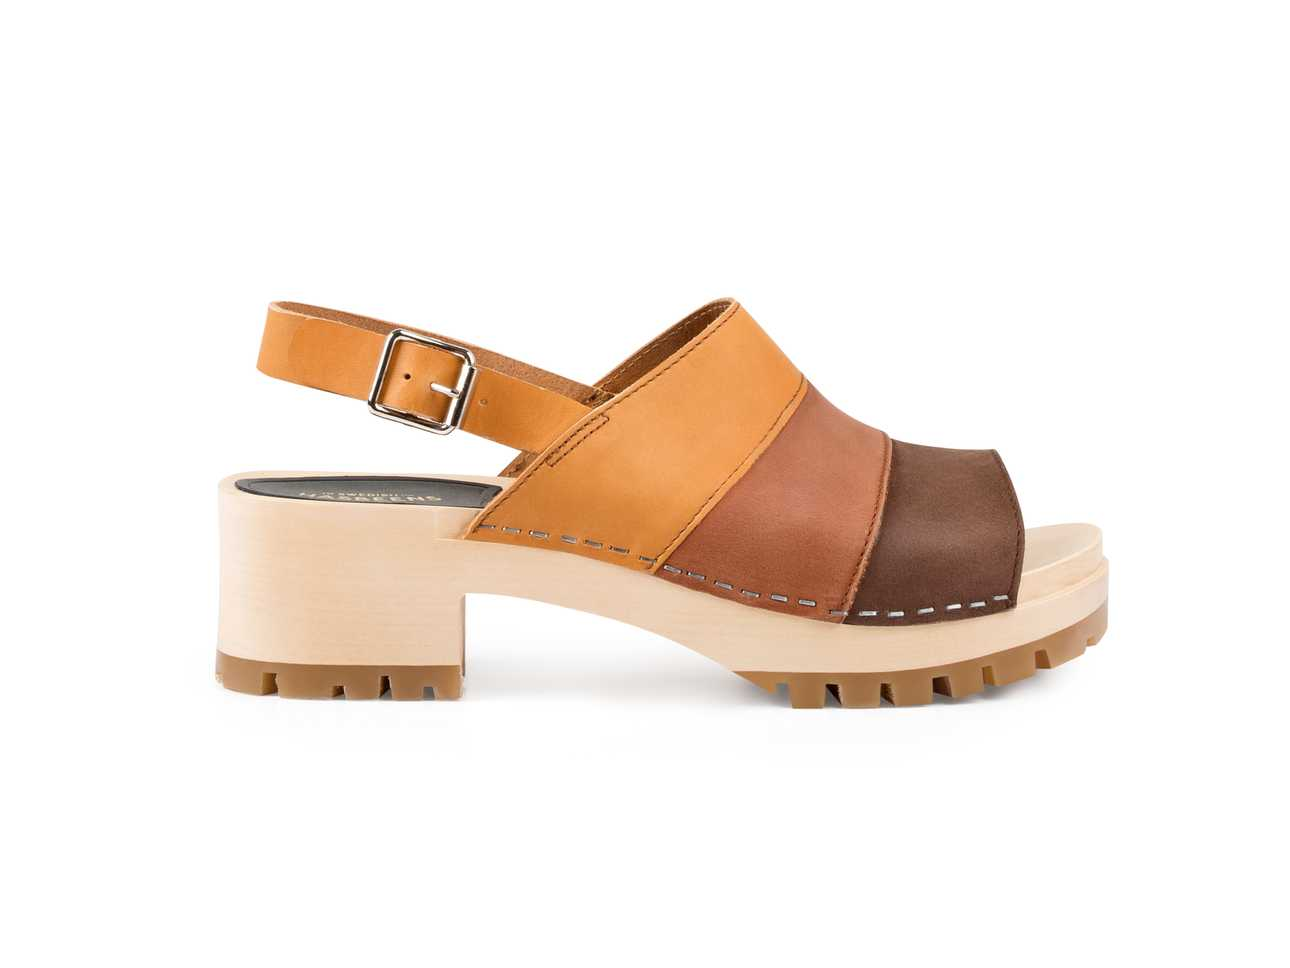 Hippie Sandal Brown Nubuck combo